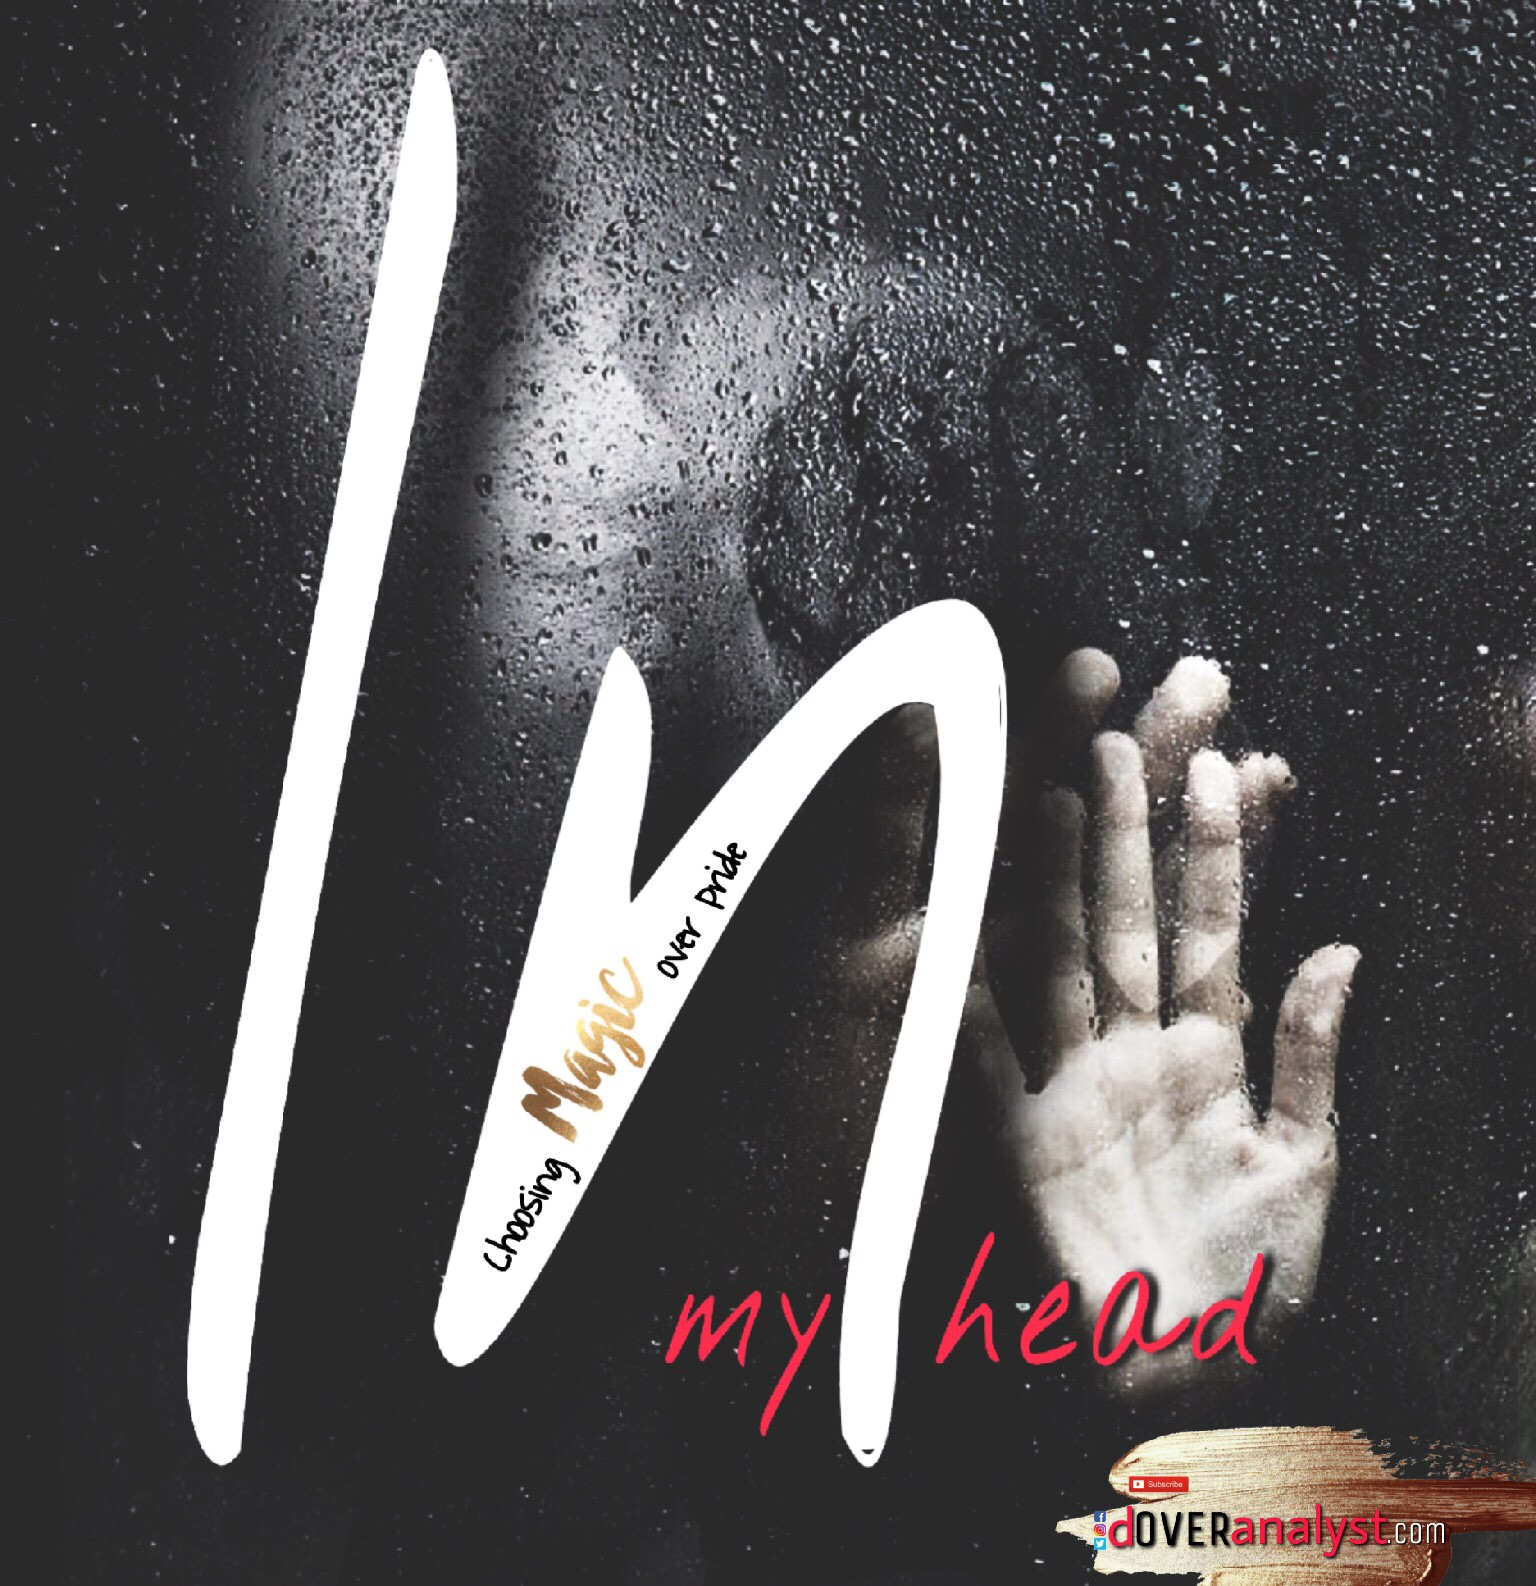 in my head poster two hands on wet surface